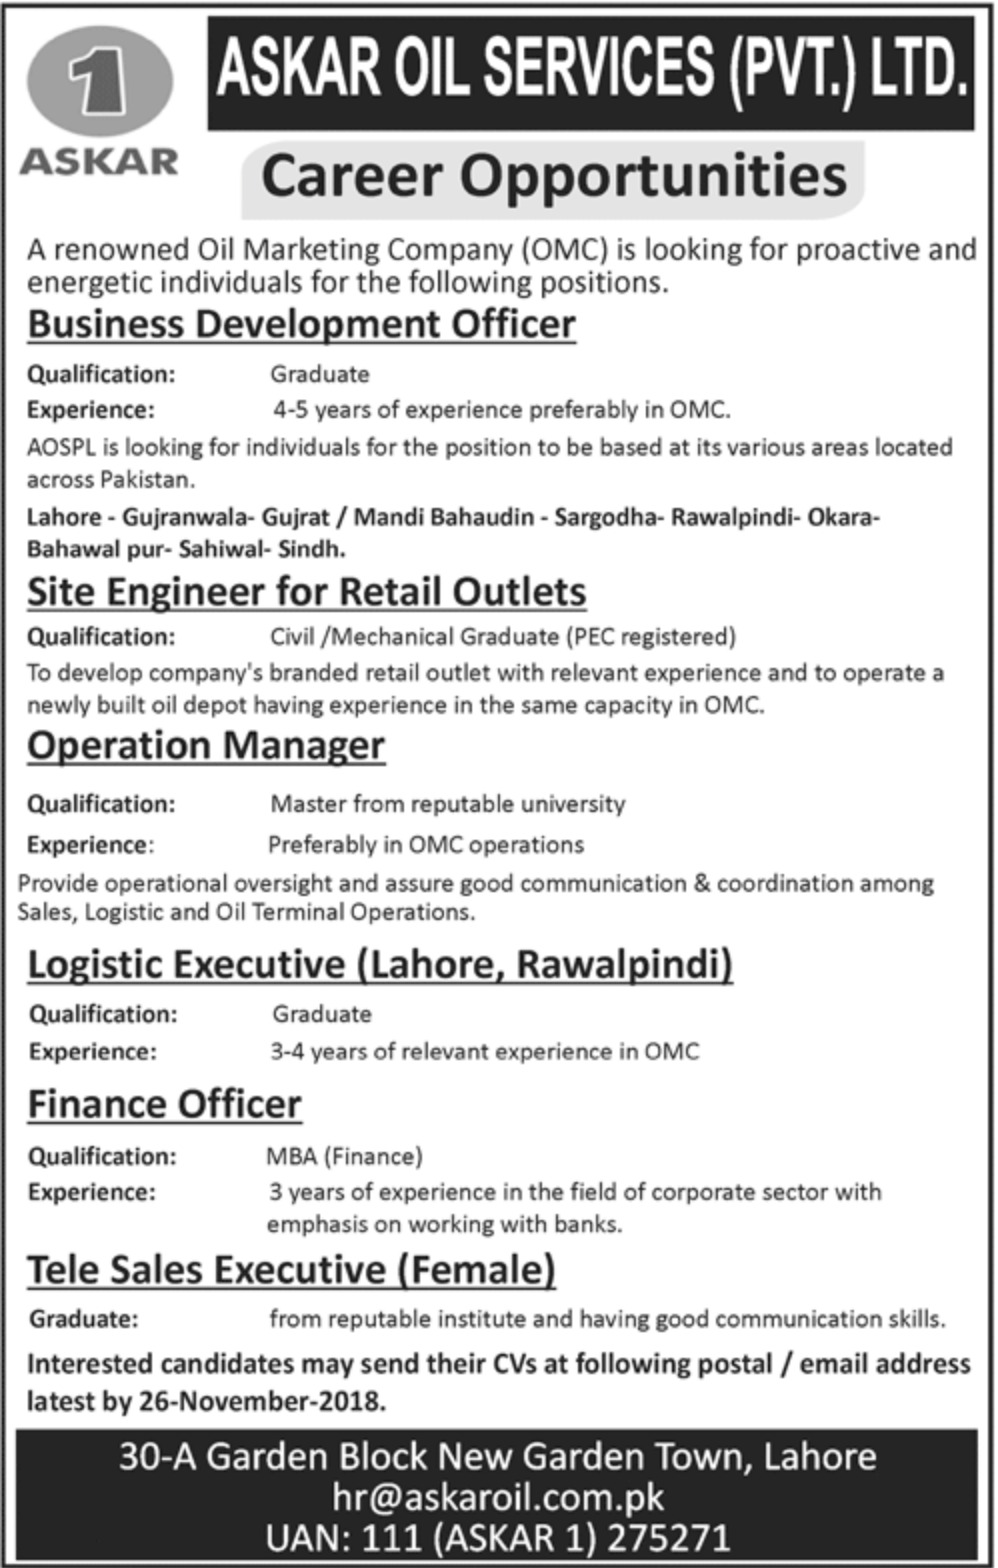 Askar Oil Services Pvt Ltd Jobs 2018